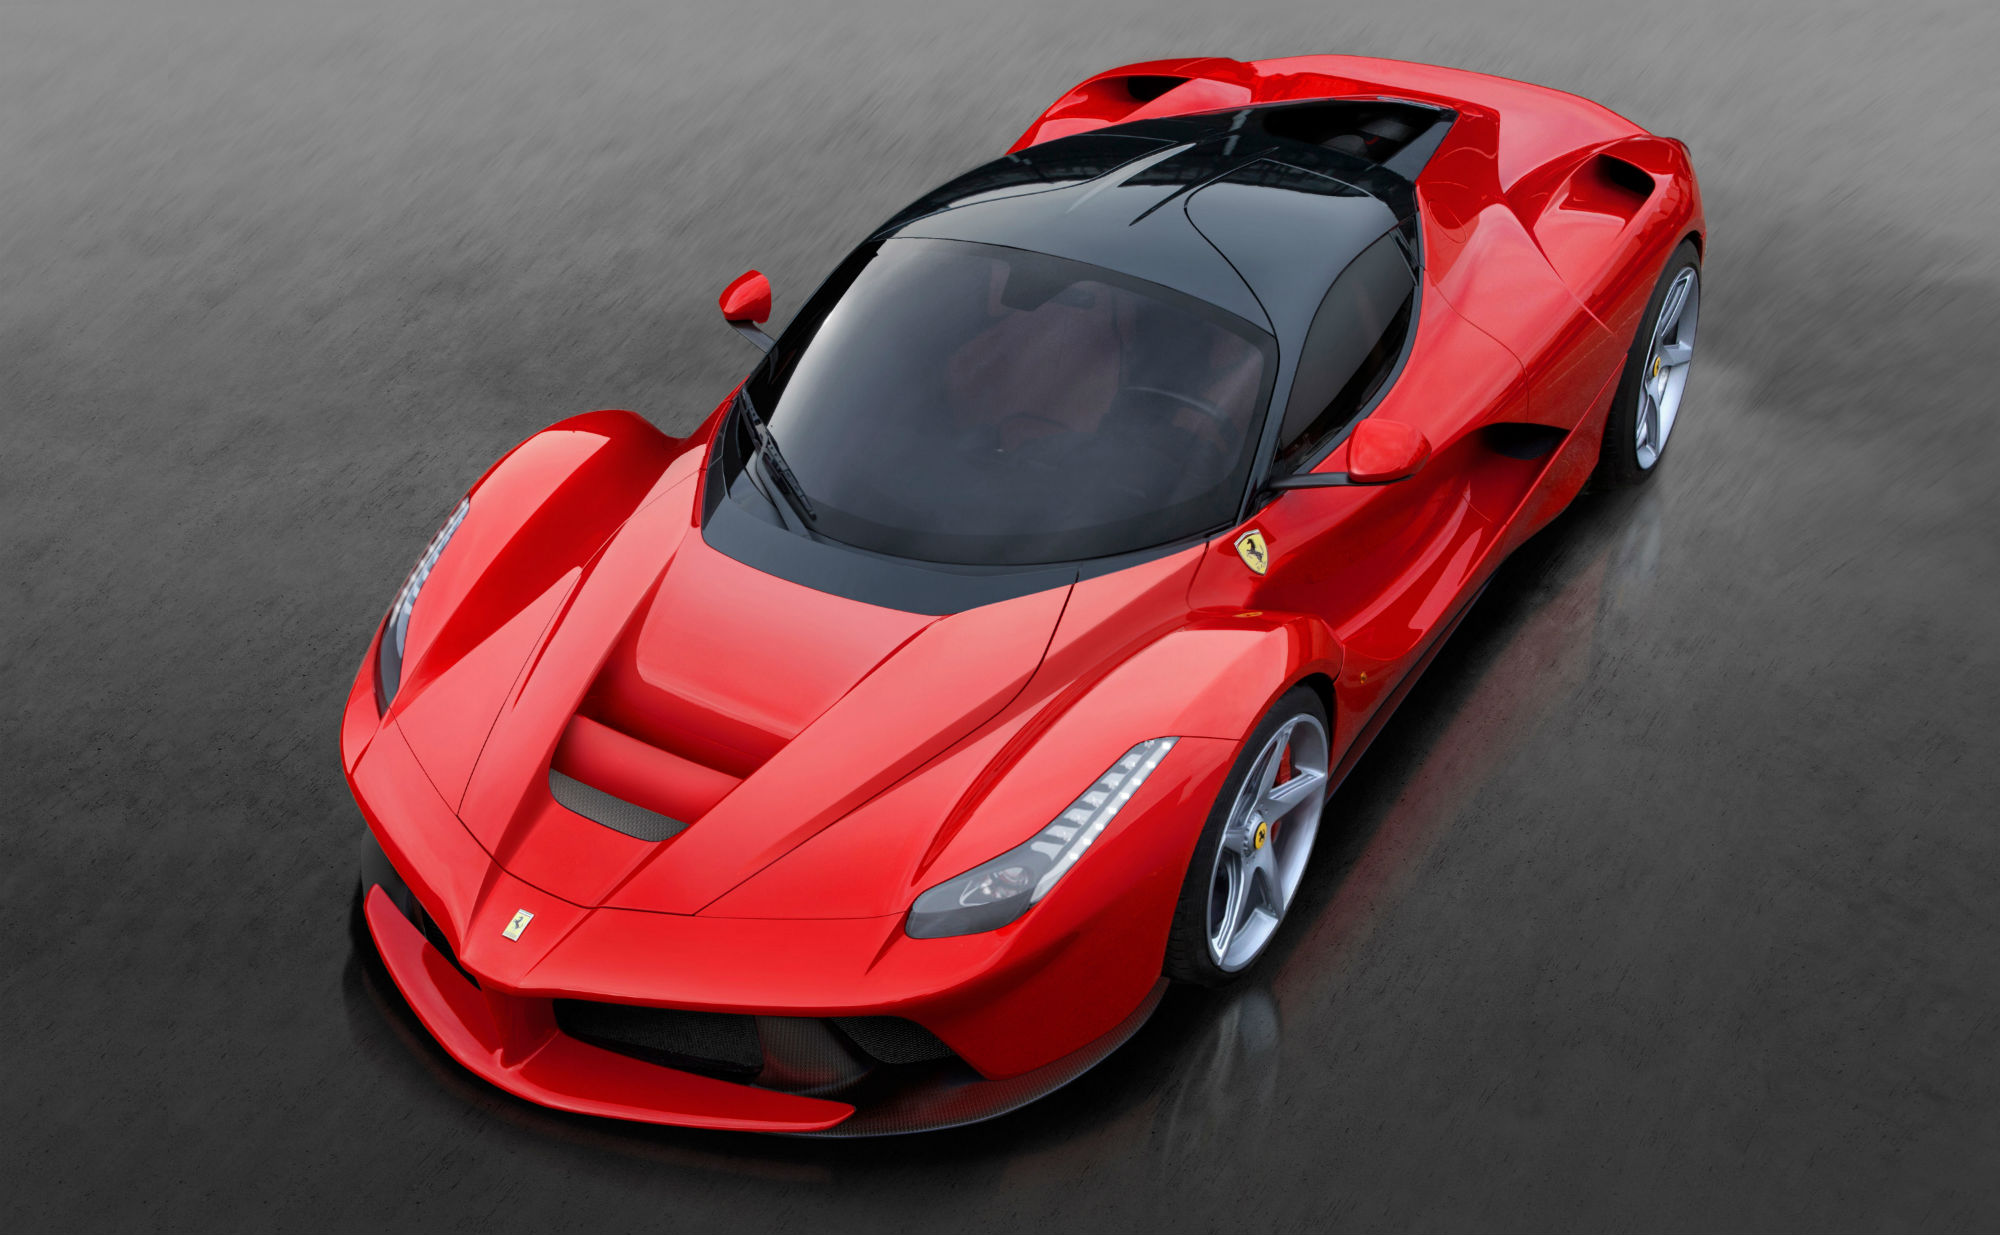 The Ferrari LaFerrari will be appearing on The Grand Tour